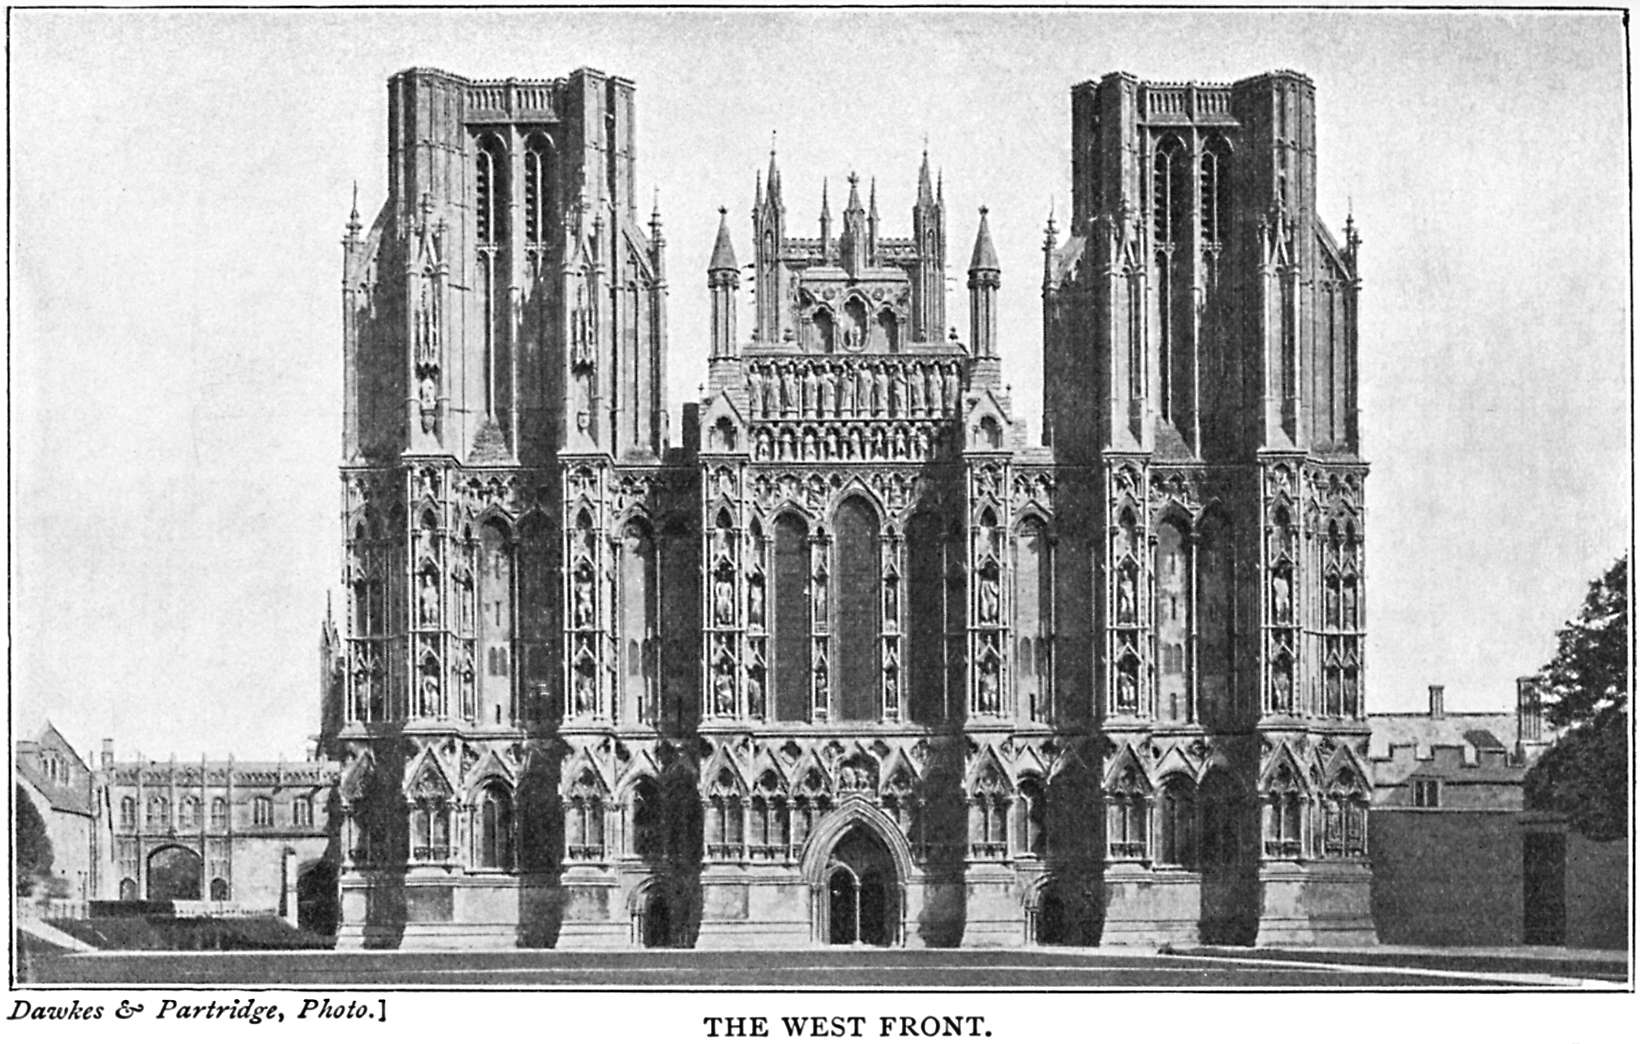 Bells Cathedrals The Cathedral Church Of Wells Percy Dearmer France Rouen Diagram North Transept Stairs West Front